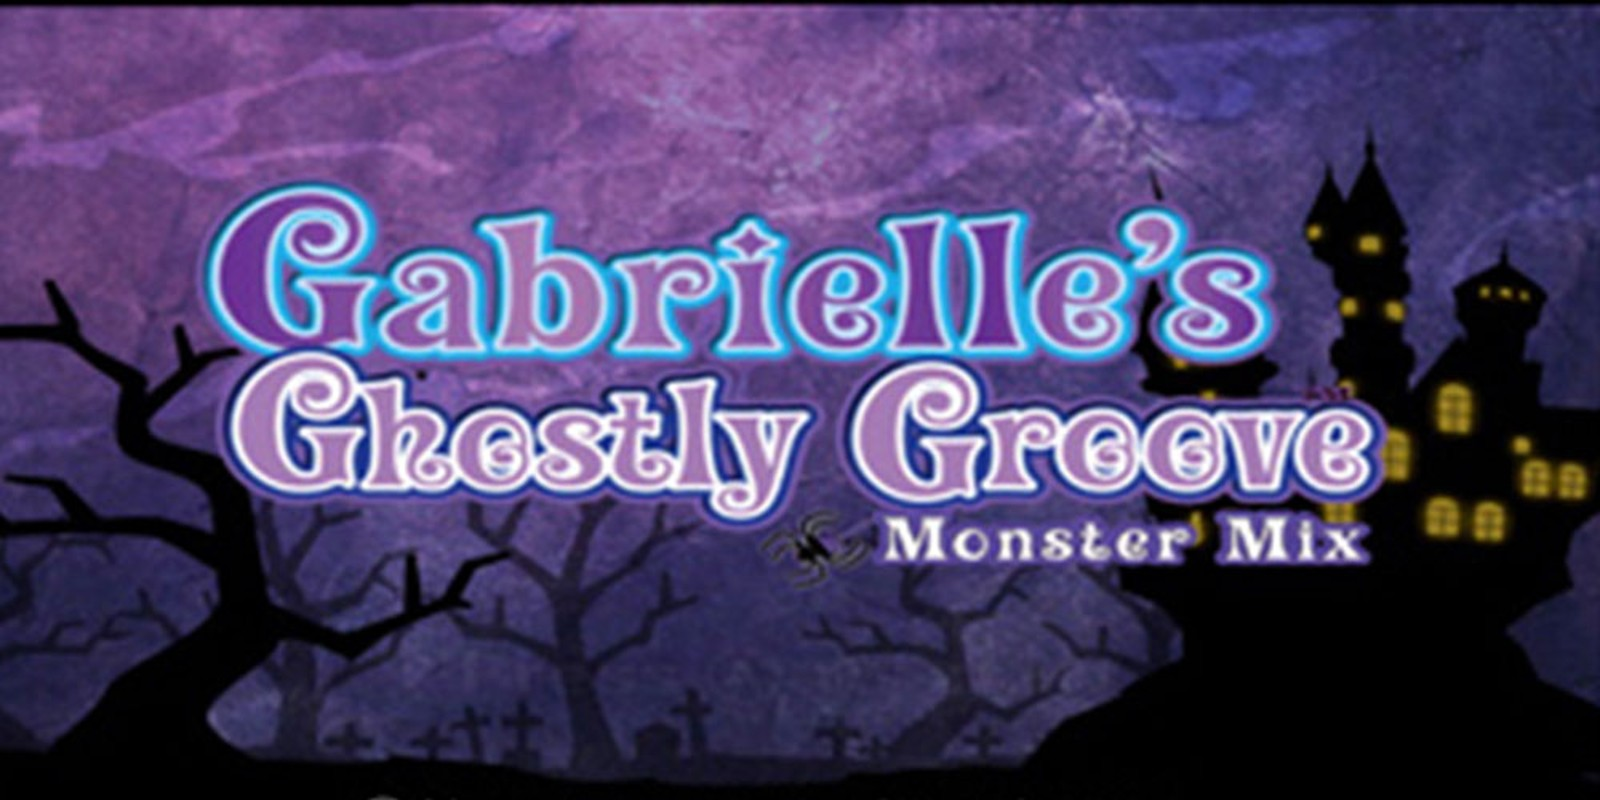 Gabrielle's Ghostly Groove™: Monster Mix